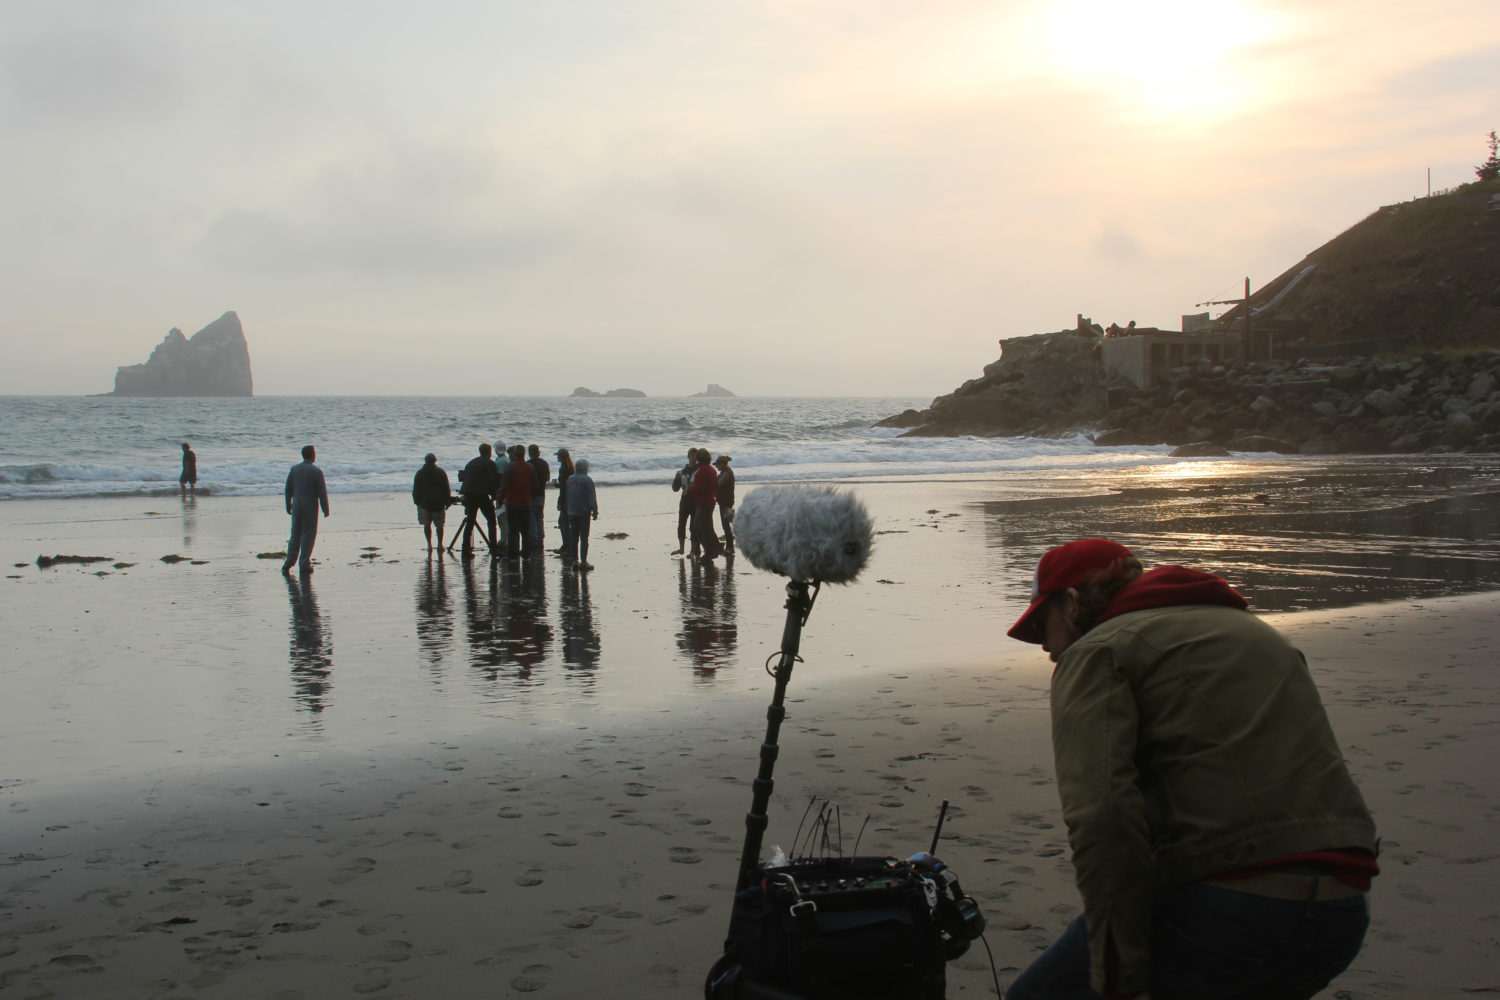 Black Road Crew filming on Oregon Coast